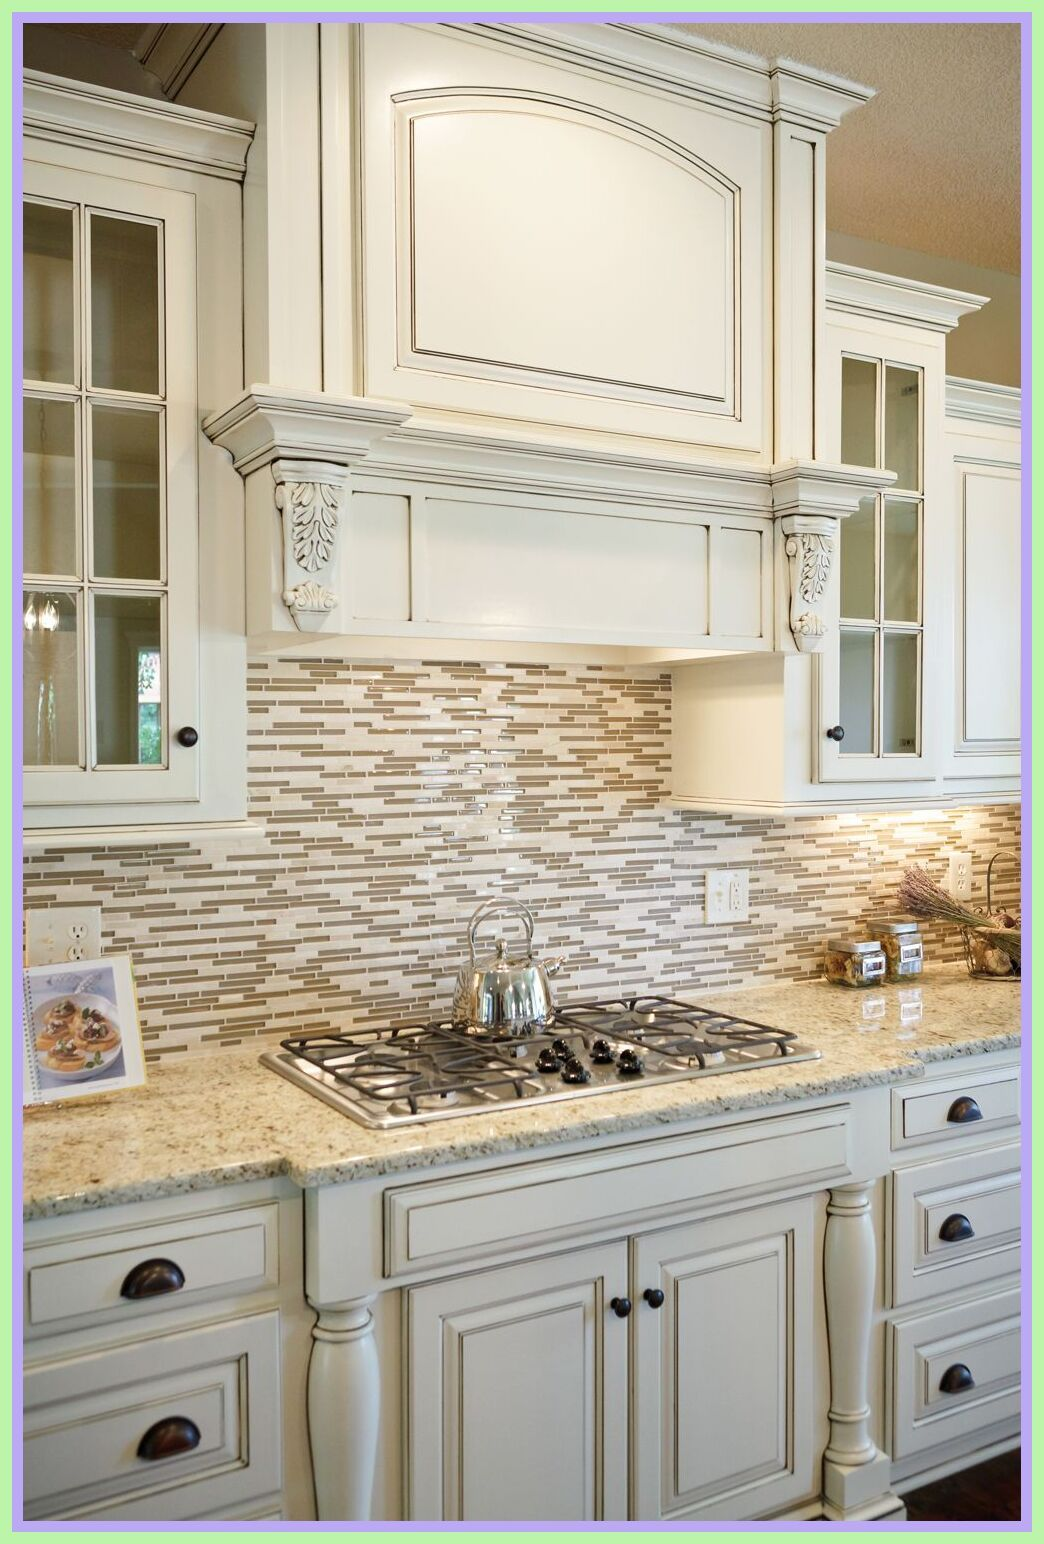 59 Reference Of Cream Kitchen Cabinets With Granite Countertops In 2020 Cream Kitchen Cabinets Cream Colored Kitchen Cabinets Kitchen Cabinets